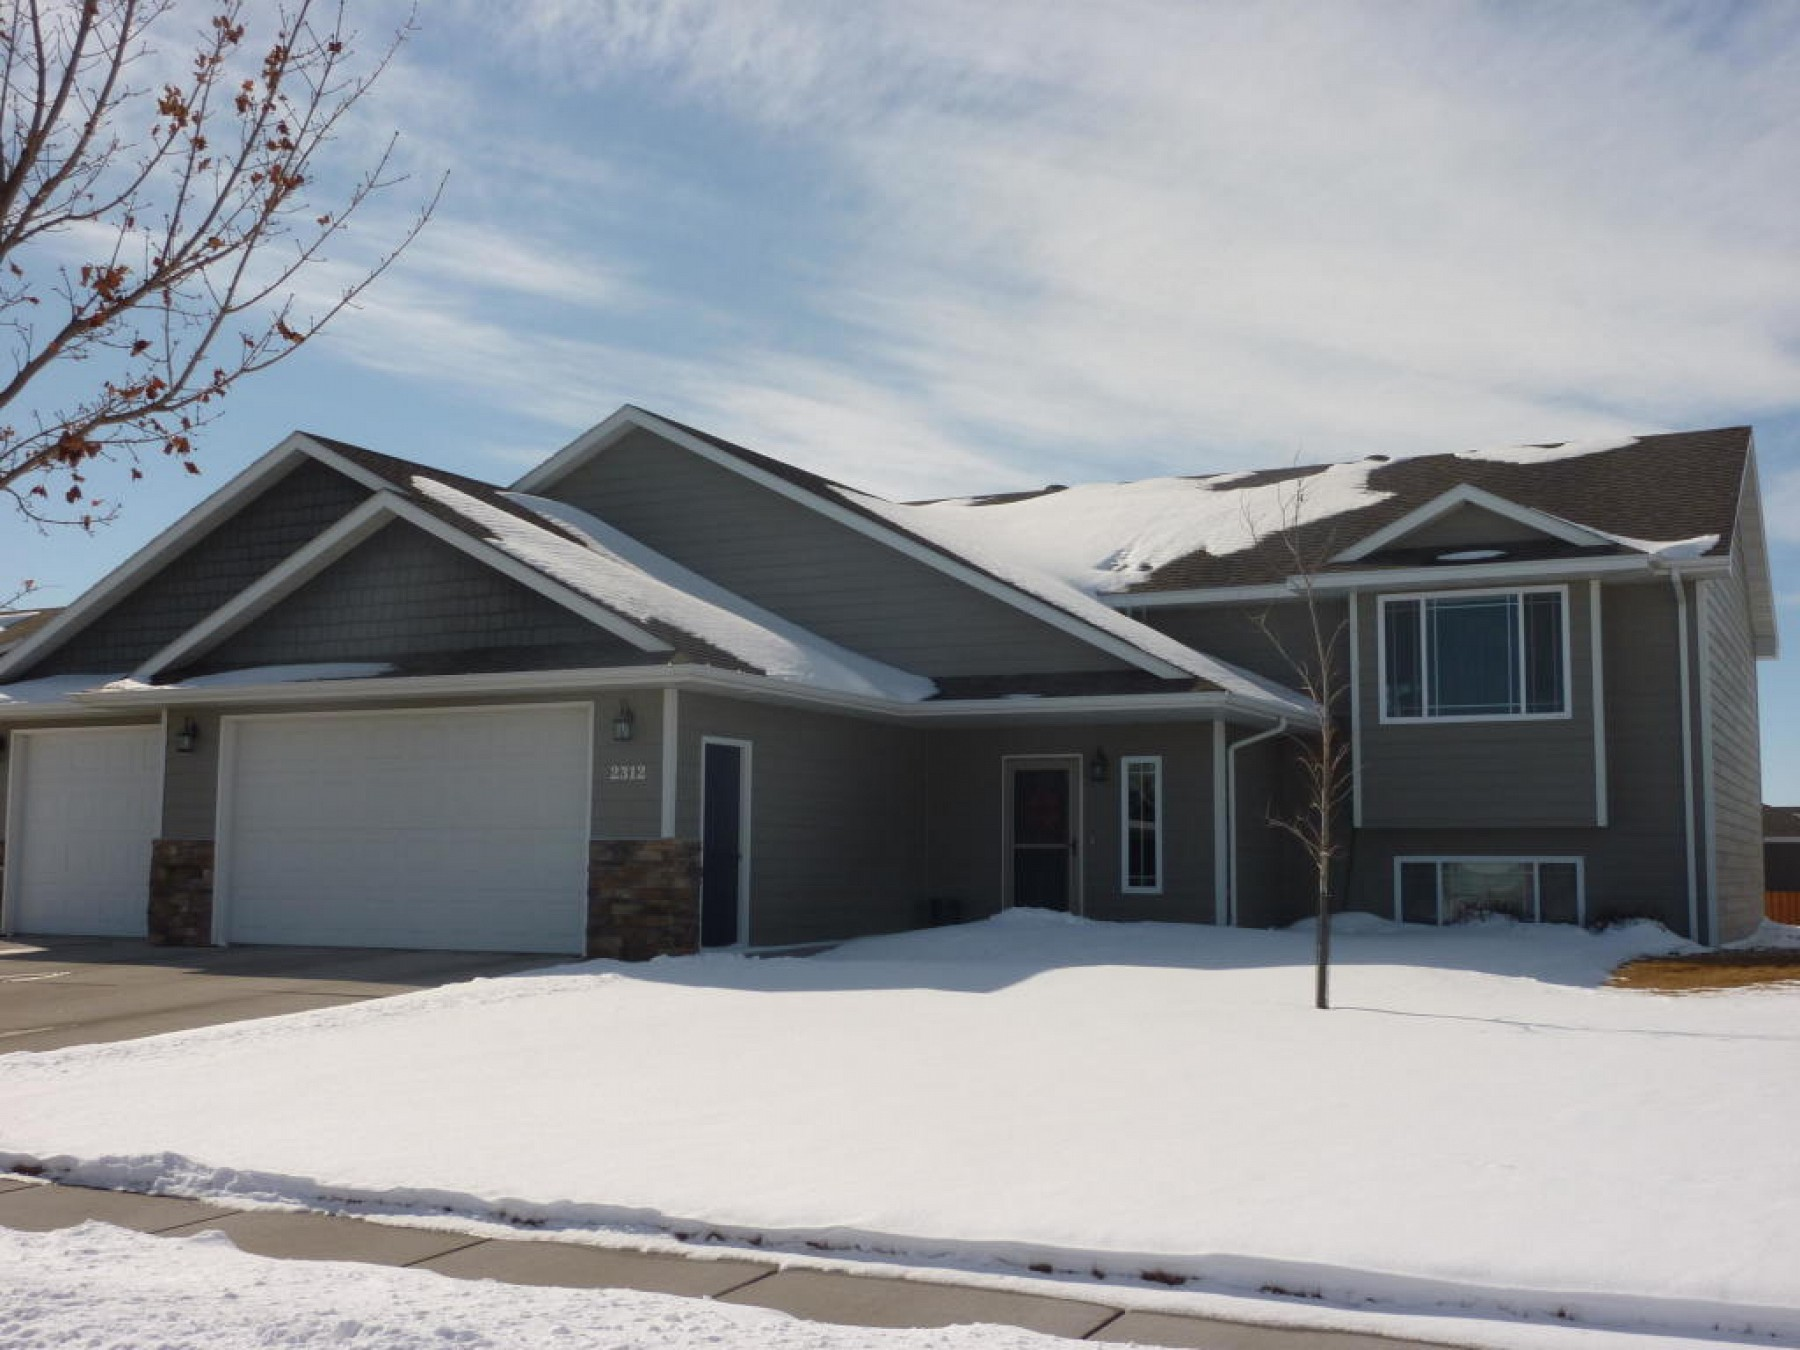 2312 16th Avenue S, Brookings, SD 57006